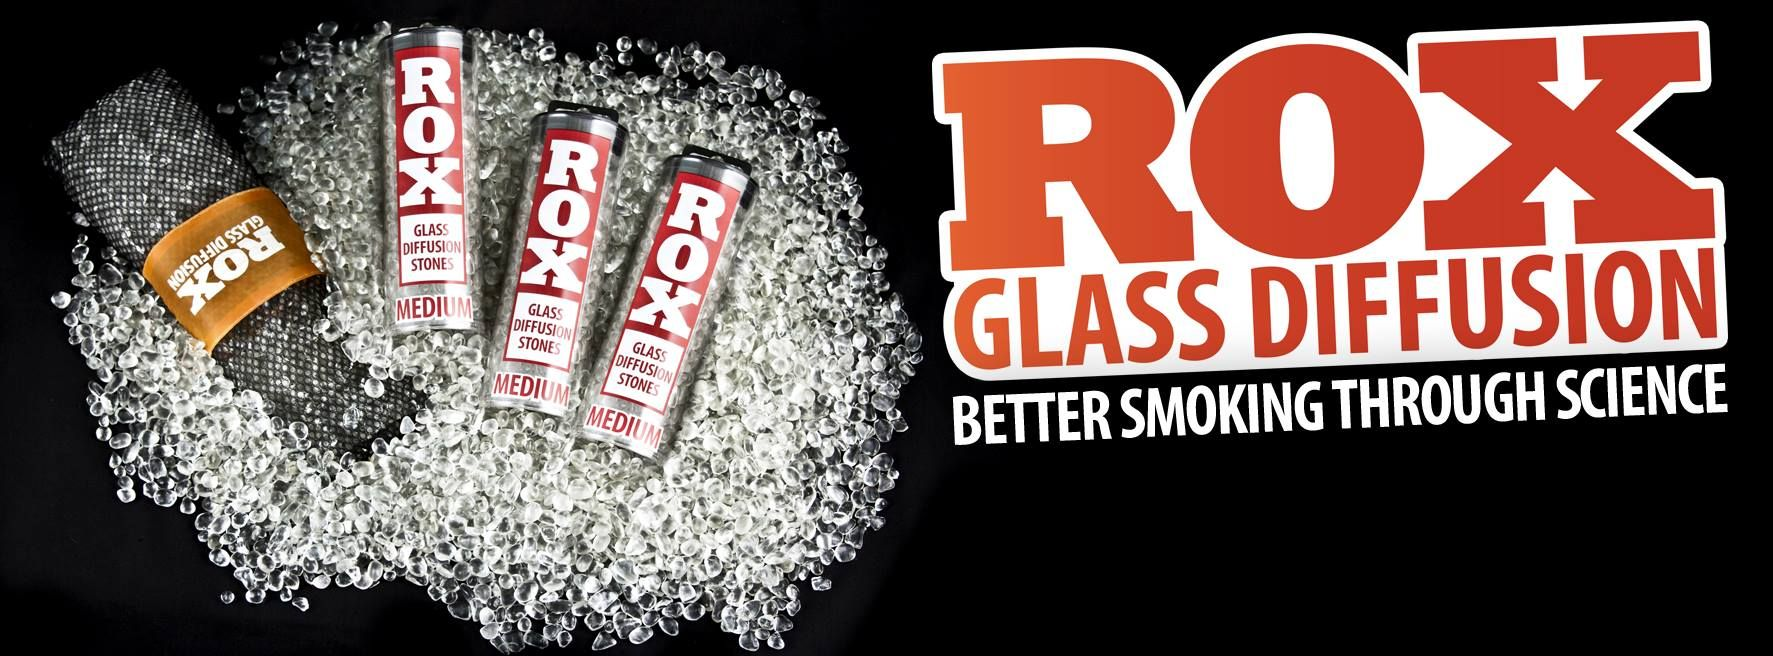 Rox Diffusion Stones now come only in two larger sizes- but at a reduced price, to ensure you have adequate diffusion to fill your water pipe